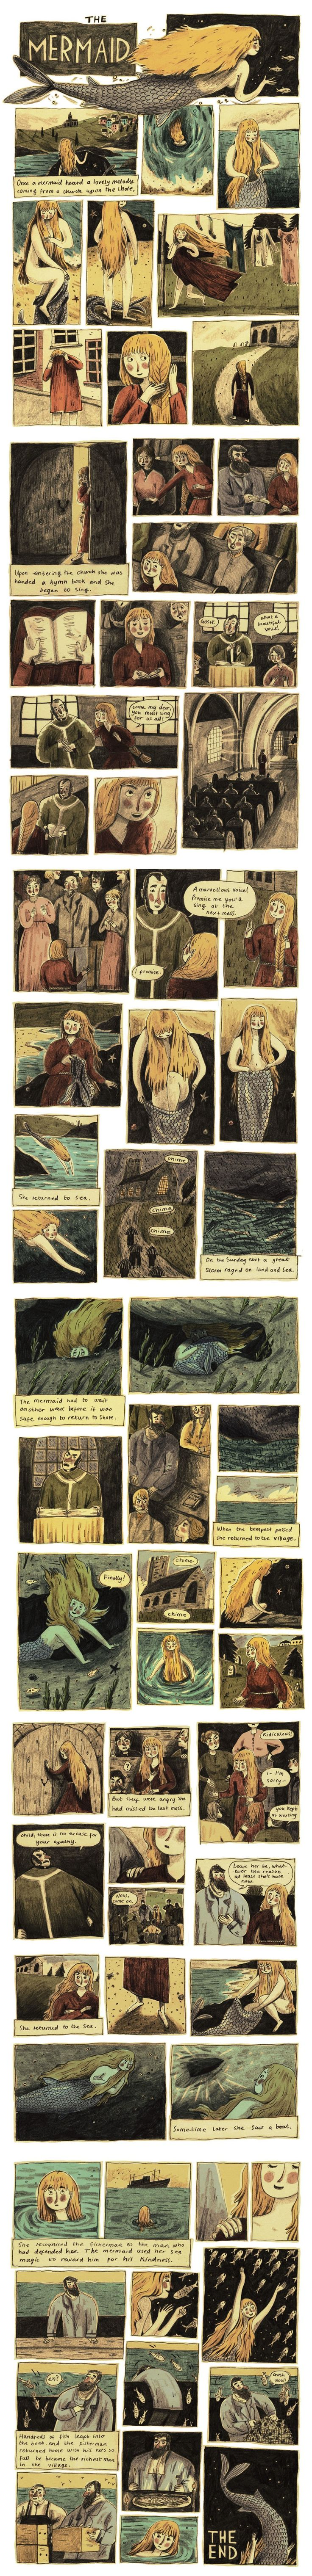 A comic based on the Cornish folktale, The Mermaid of Zennor by Briony May Smith